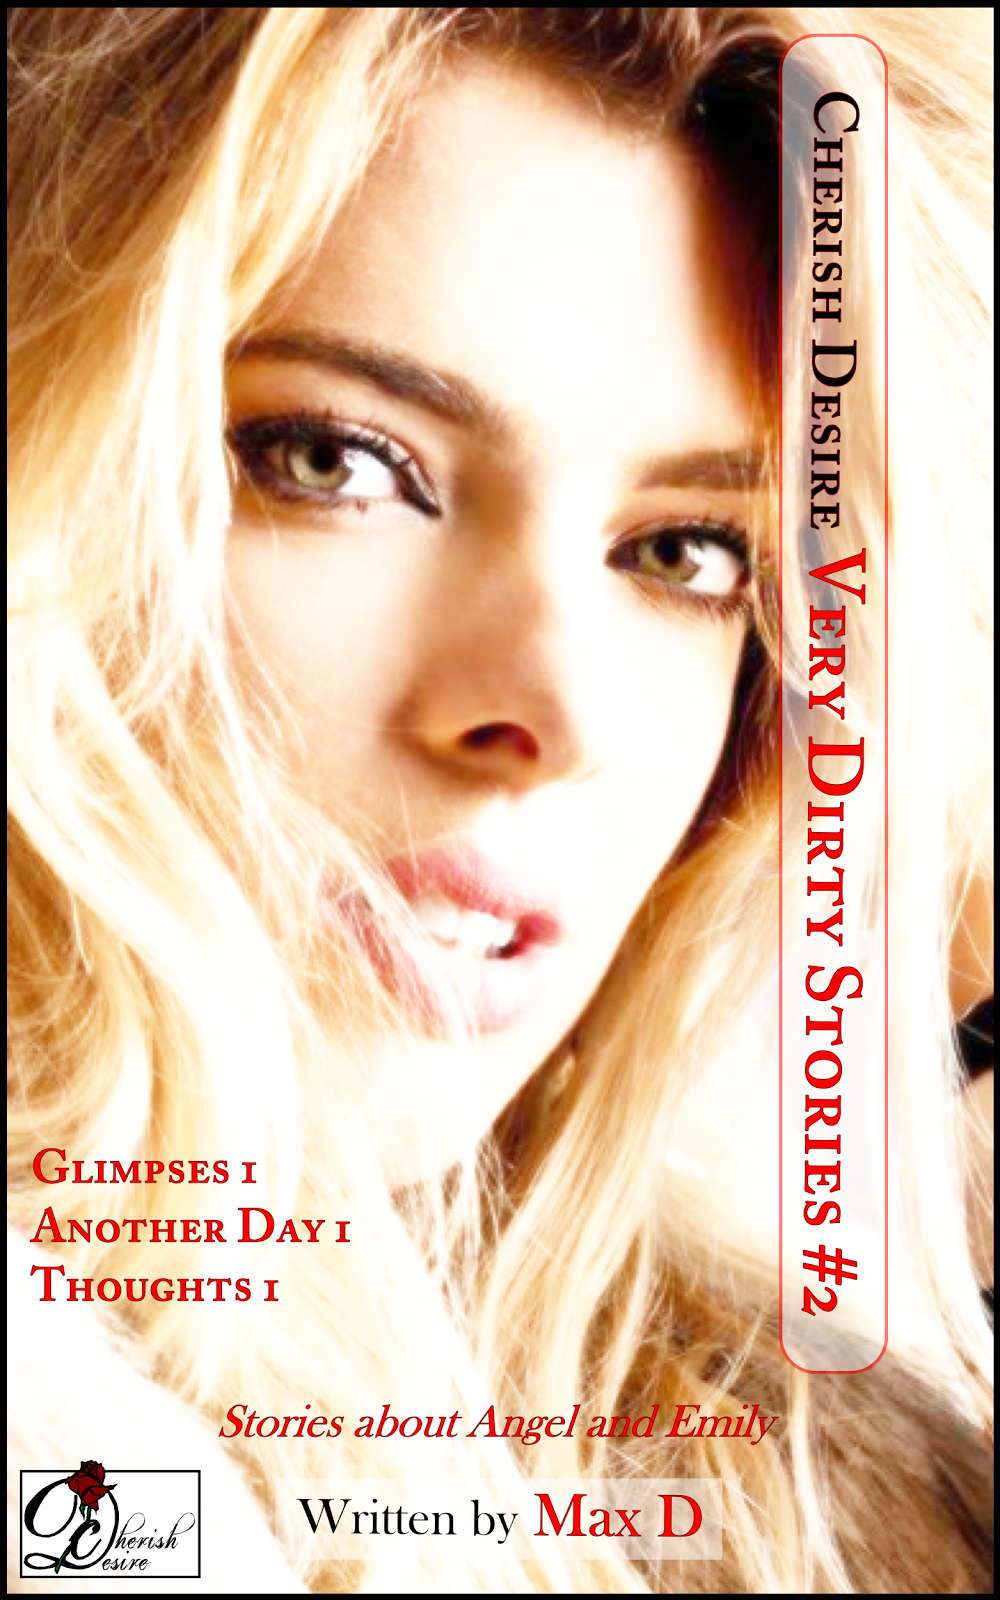 Cherish Desire: Very Dirty Stories #2, Max D, erotica